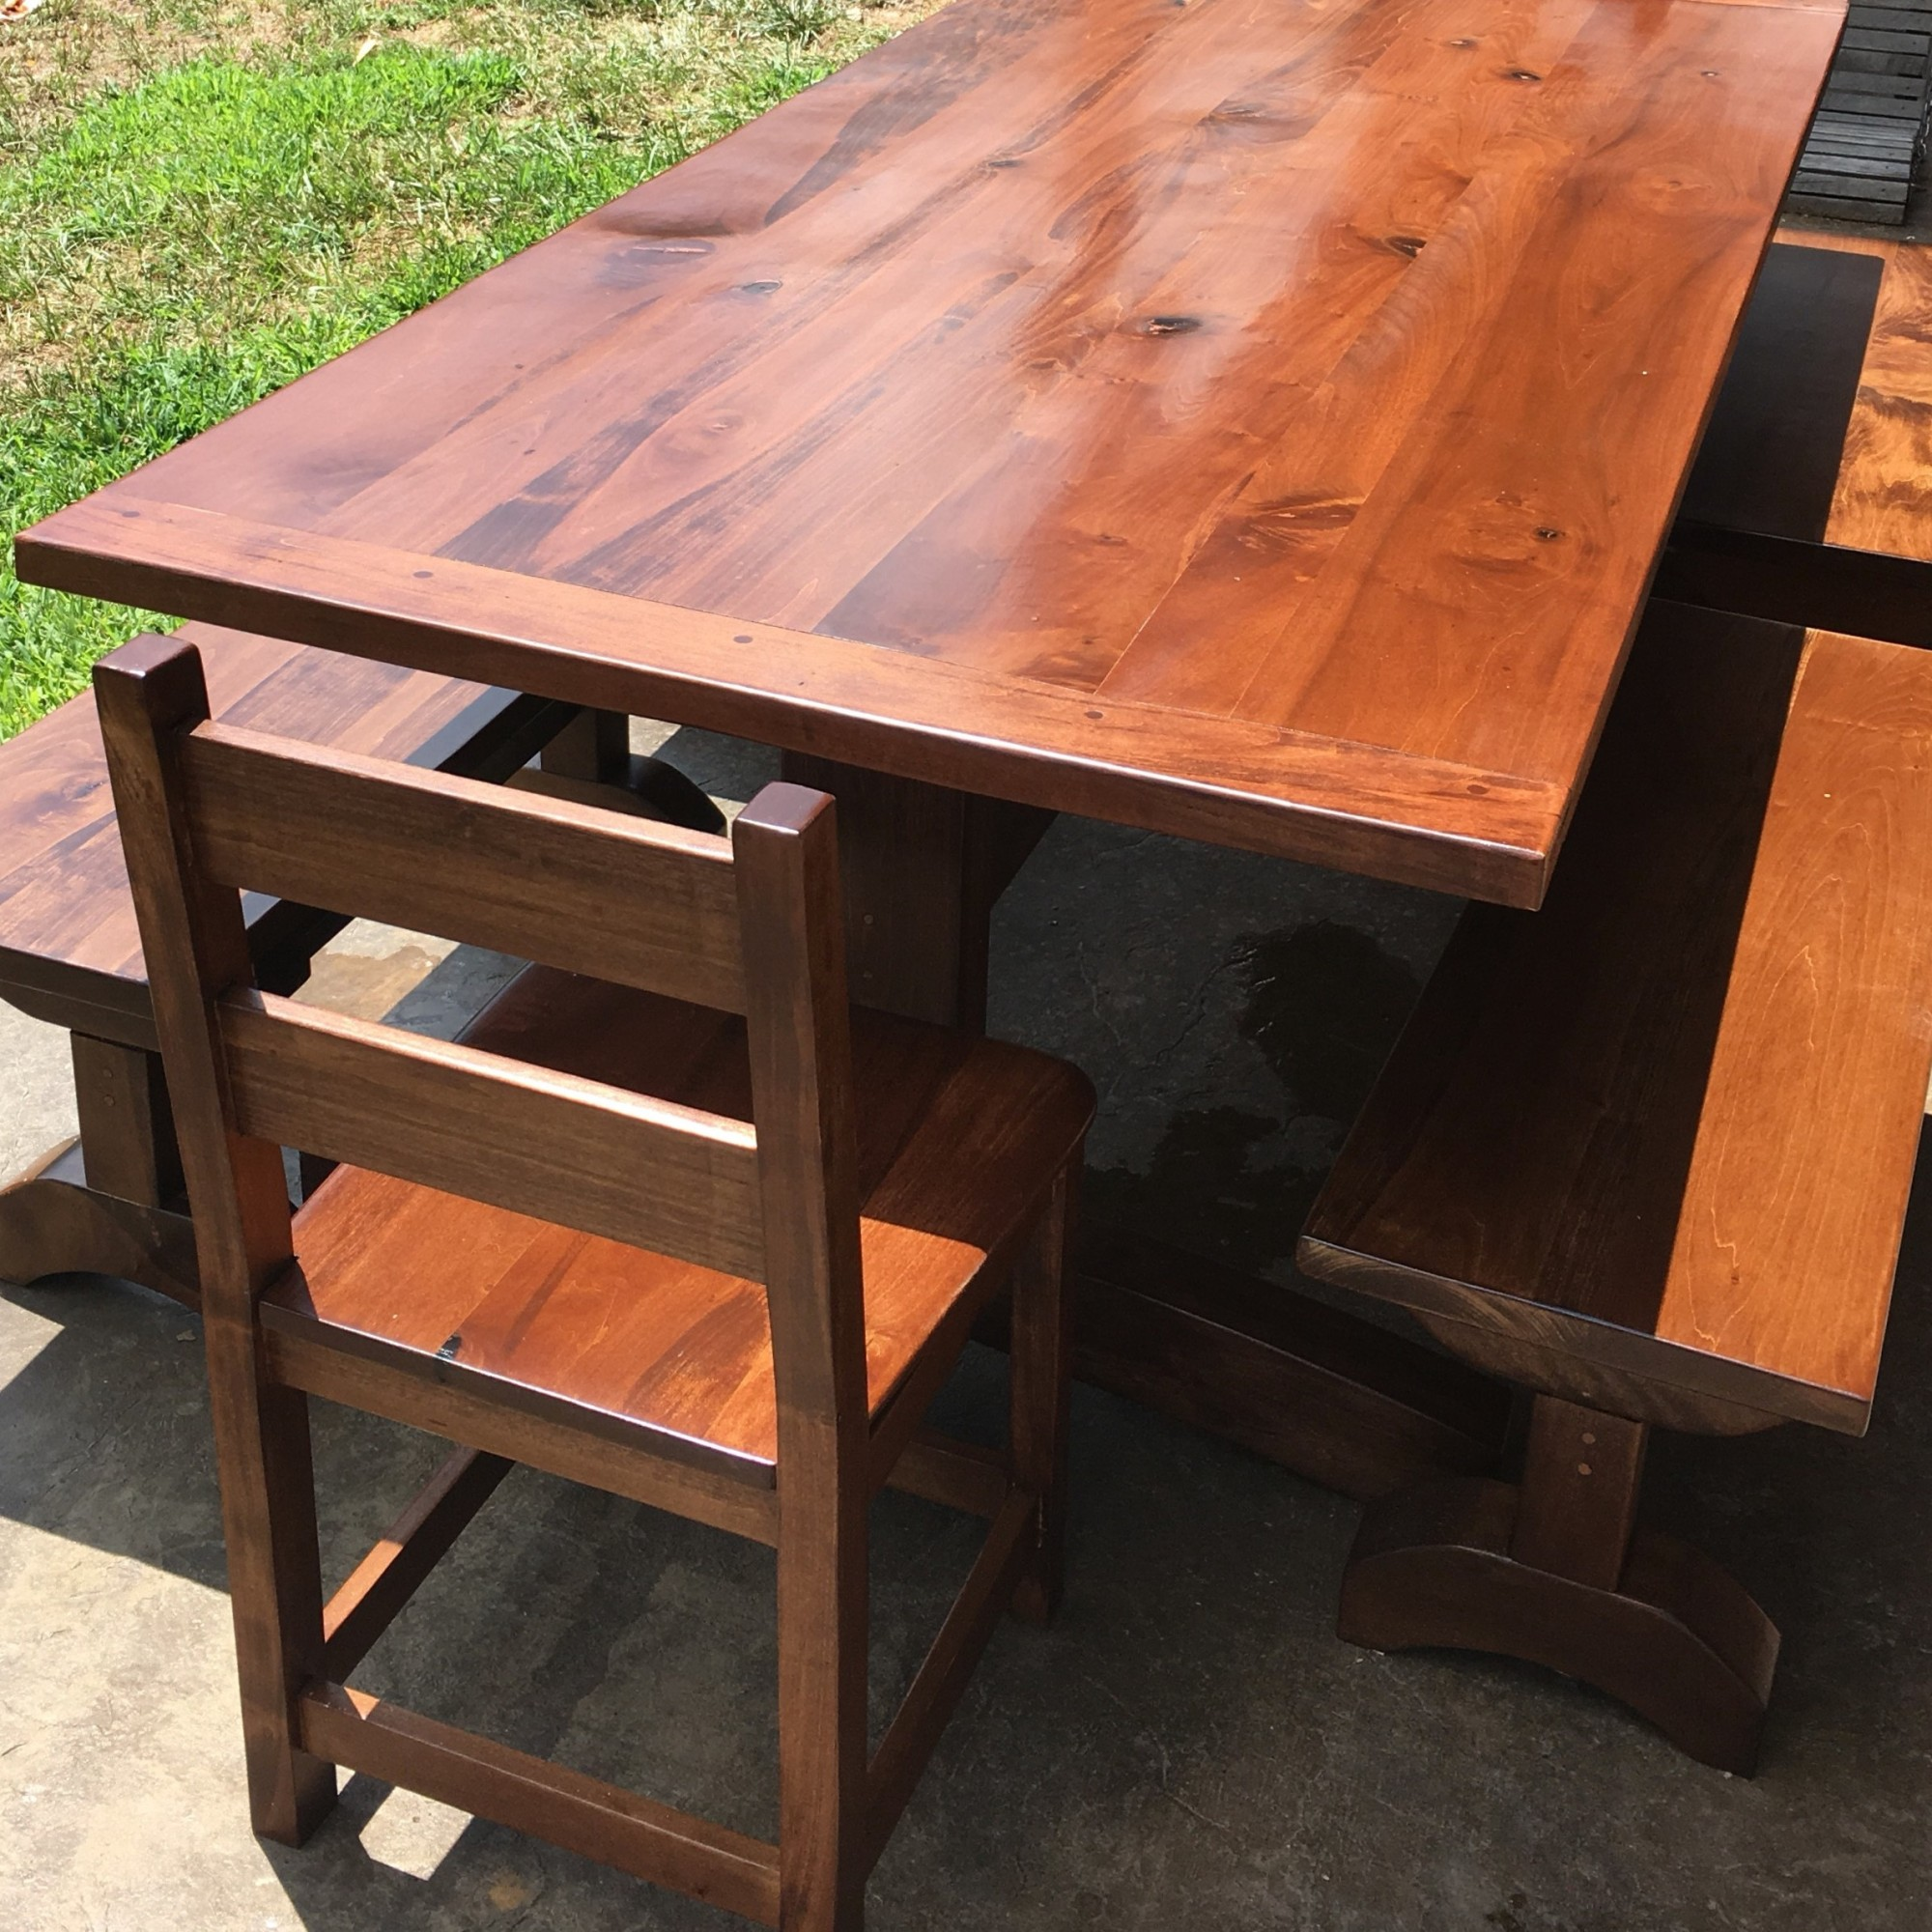 Kitchen Table with Four Benches, Farmhouse Table, Dining Room Table, Large Harvest (8-Foot) Table, Kitchen Furniture, Skaggs Creek Wood Shop